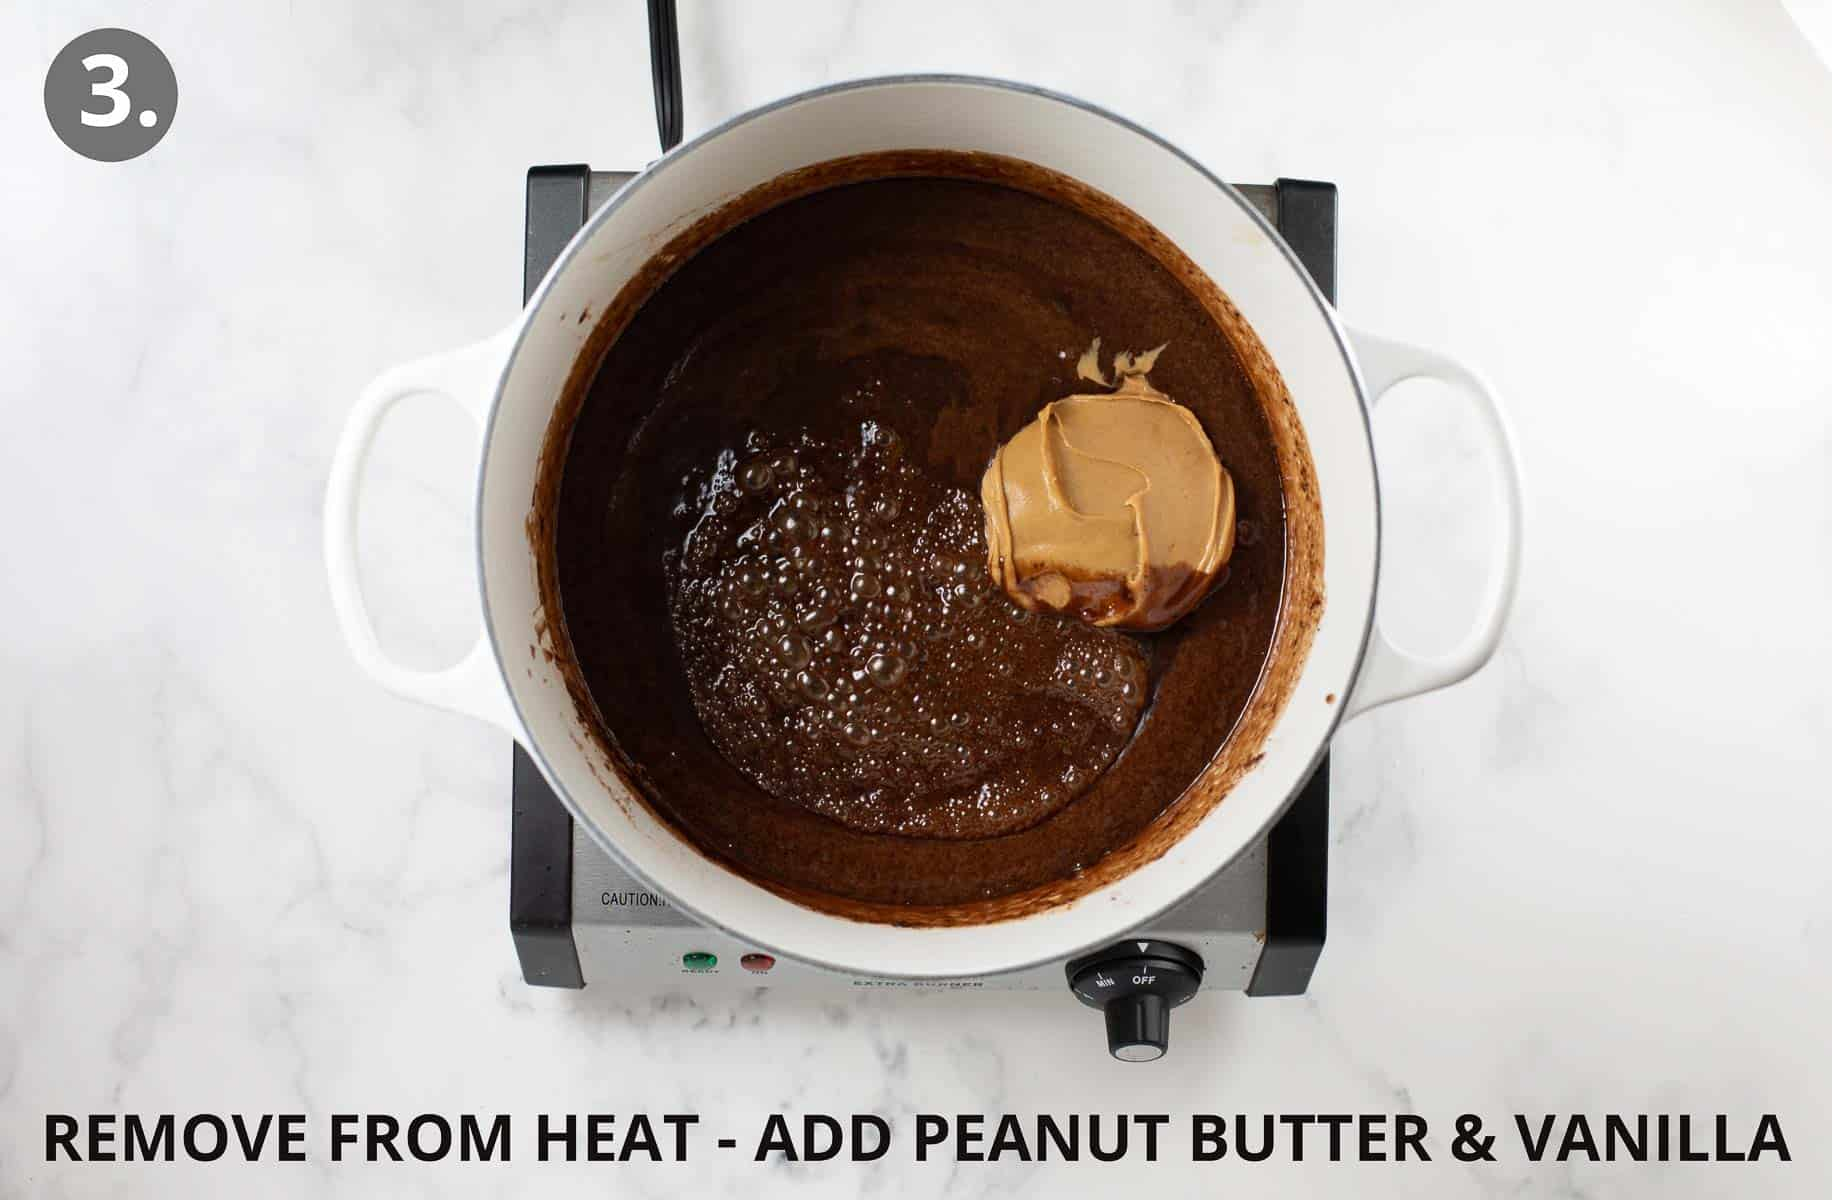 adding peanut butter and vanilla to chocolate mixture